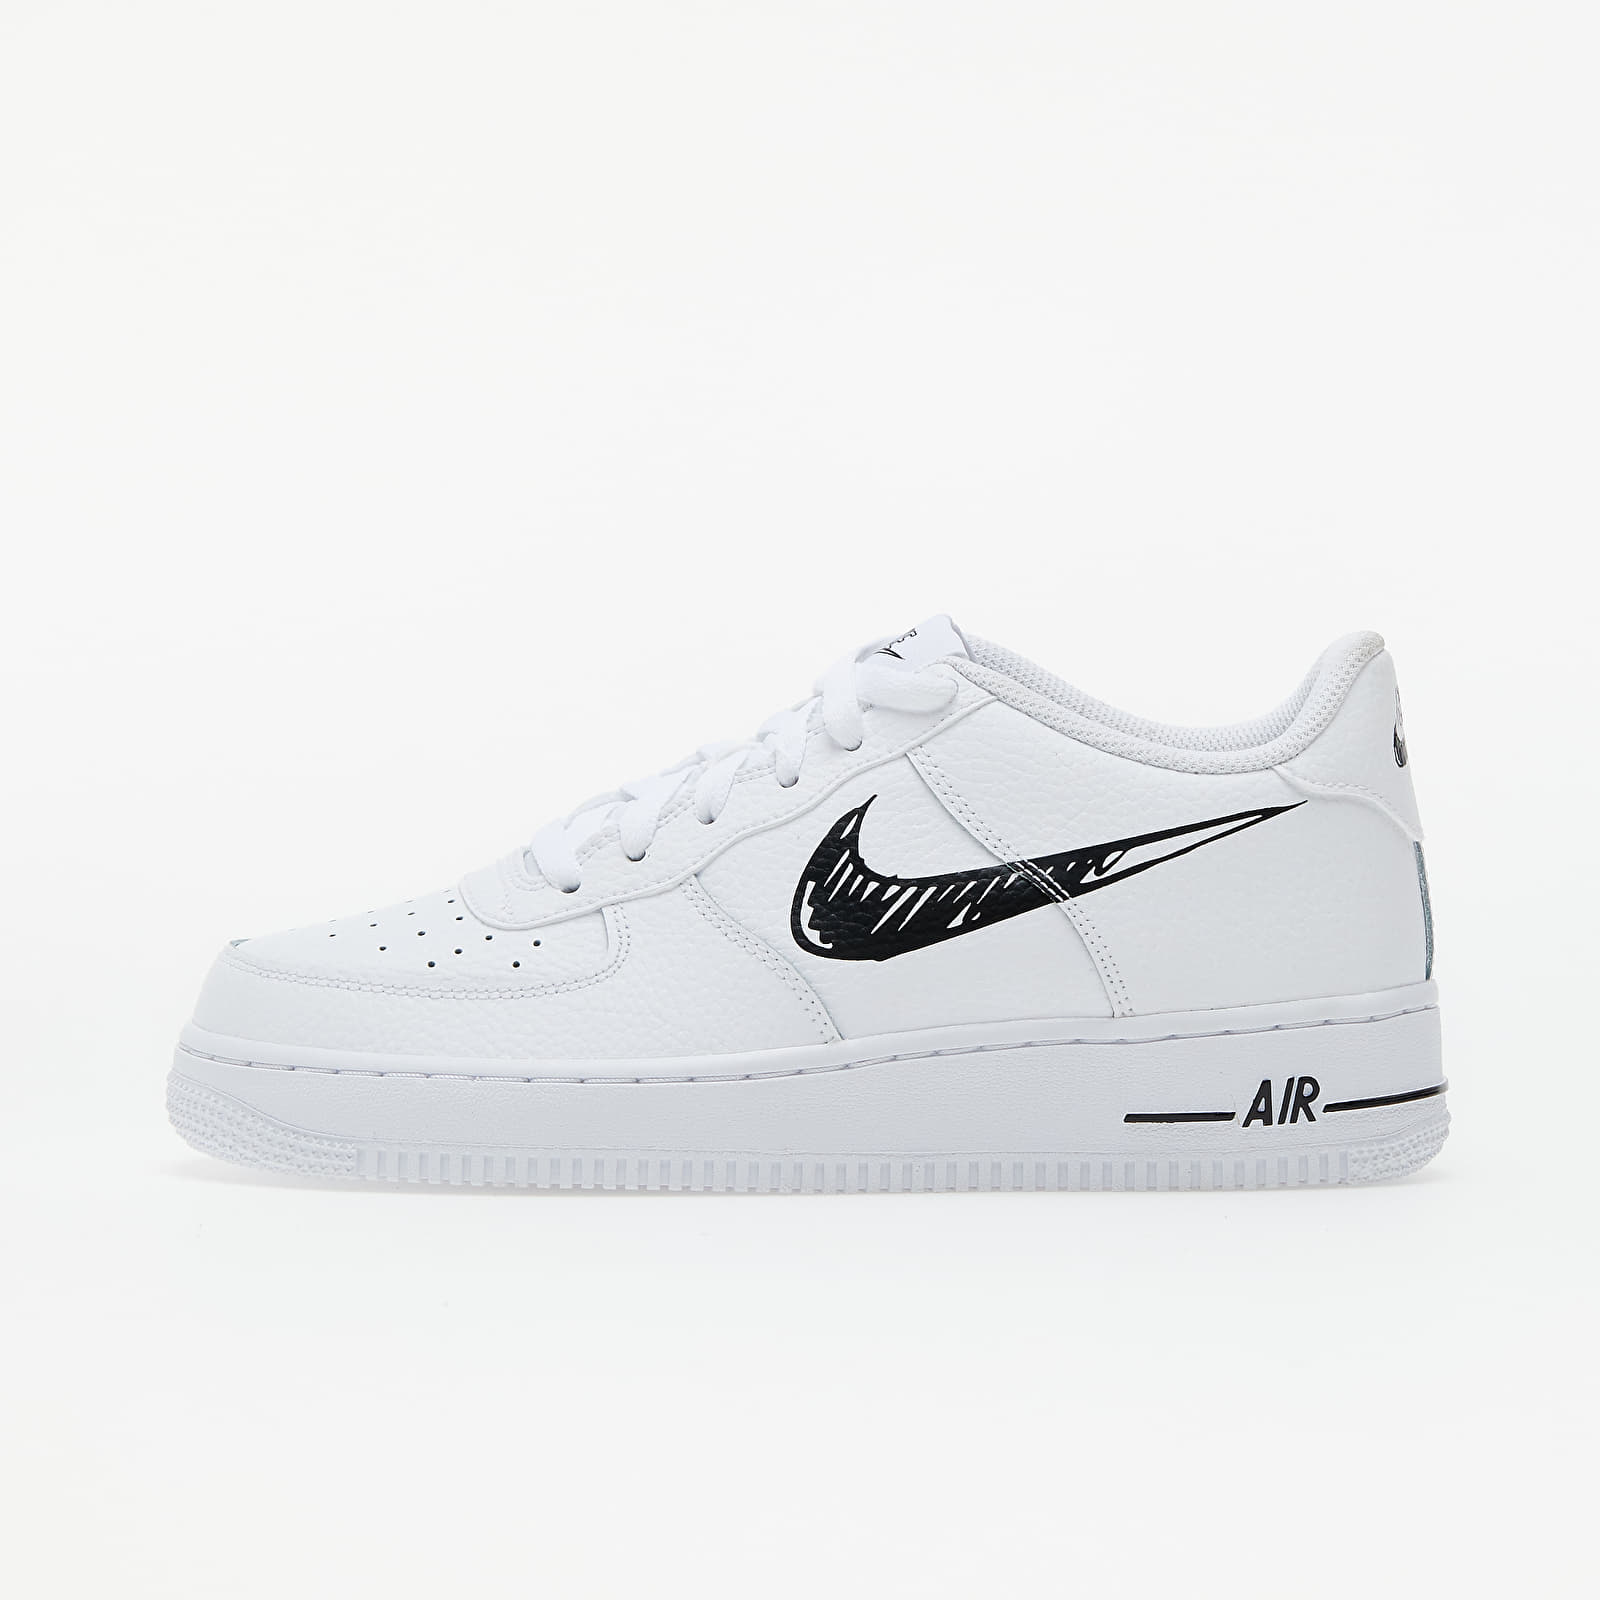 Nike Air Force 1 Low GS White/ Black-White EUR 38